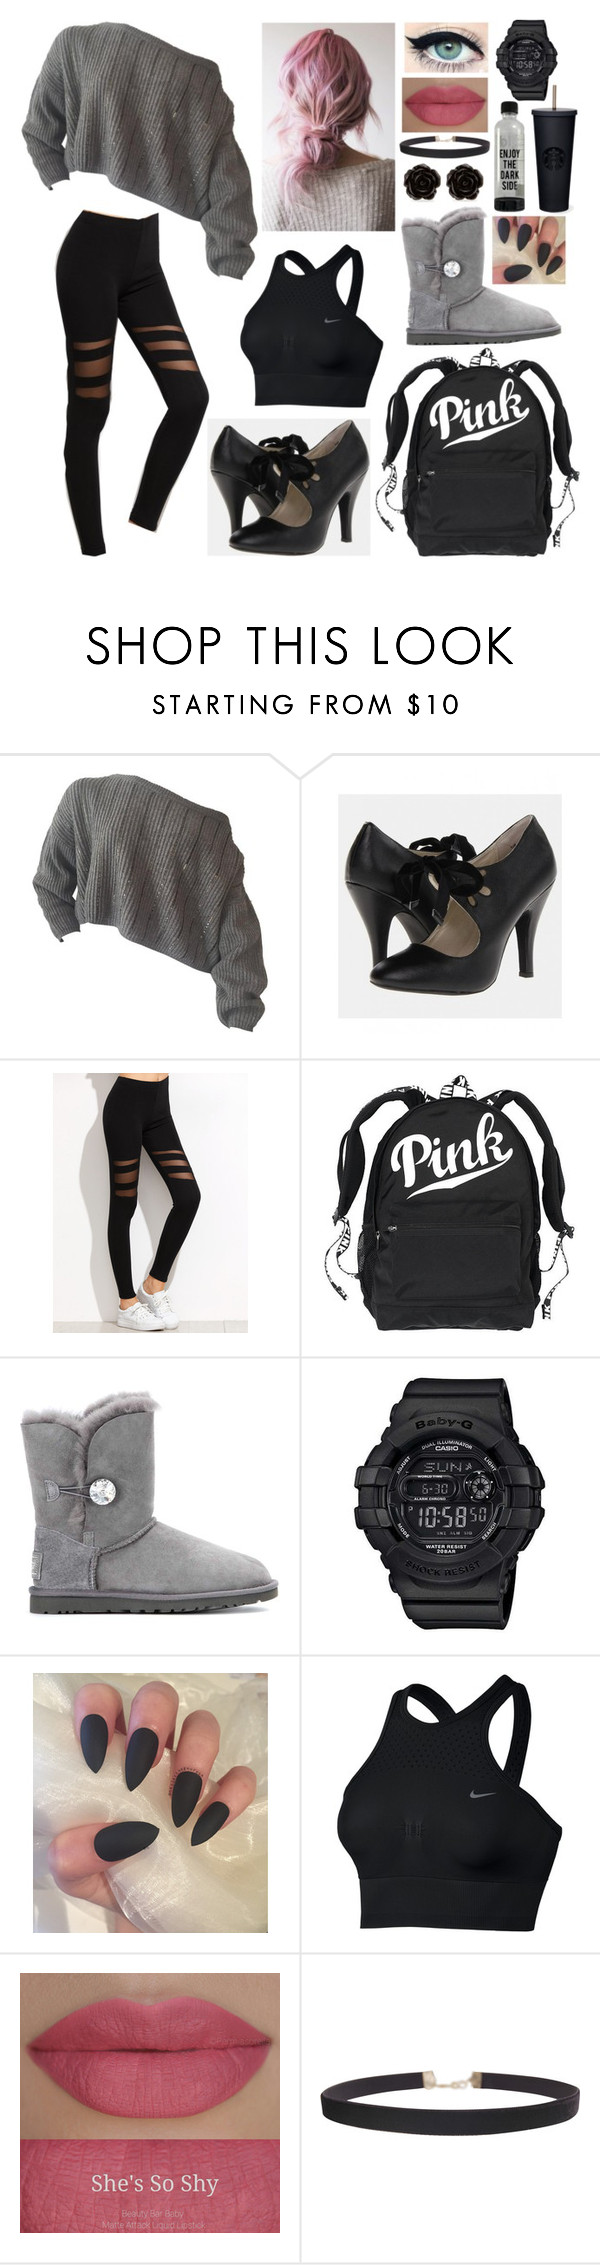 """""""Dance practice 4"""" by livylash ❤ liked on Polyvore featuring Victoria's Secret, UGG, Casio, NIKE, Humble Chic and Erica Lyons"""